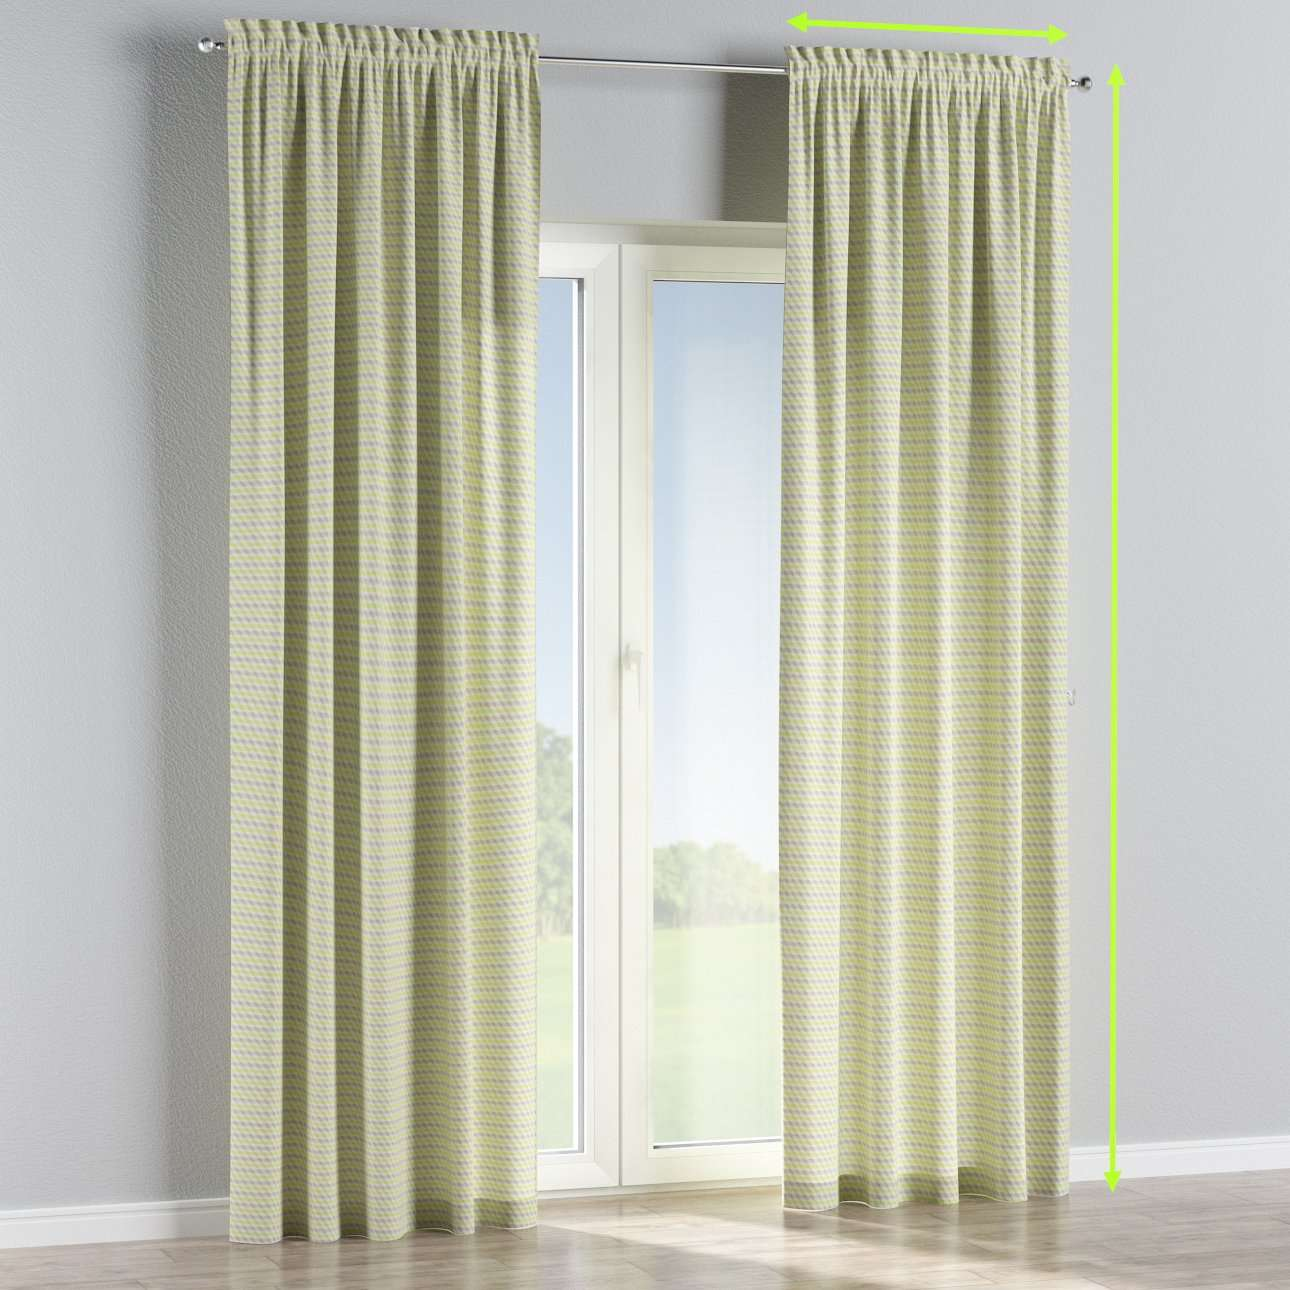 Slot and frill lined curtains in collection Rustica, fabric: 140-36